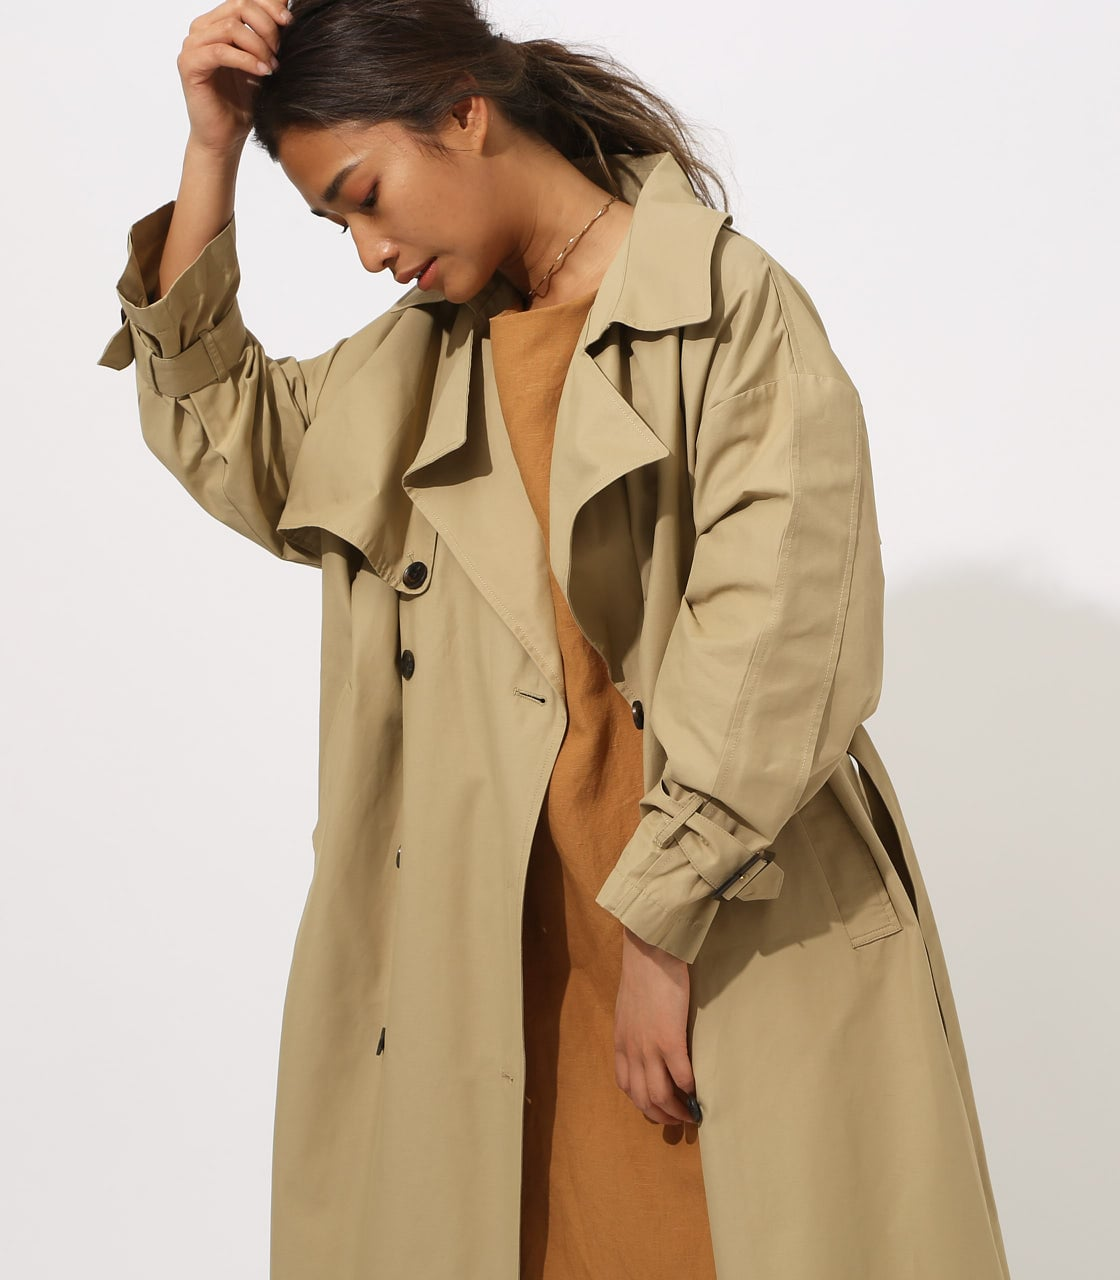 【AZUL BY MOUSSY】VOLUME TRENCH COAT 詳細画像 BEG 3